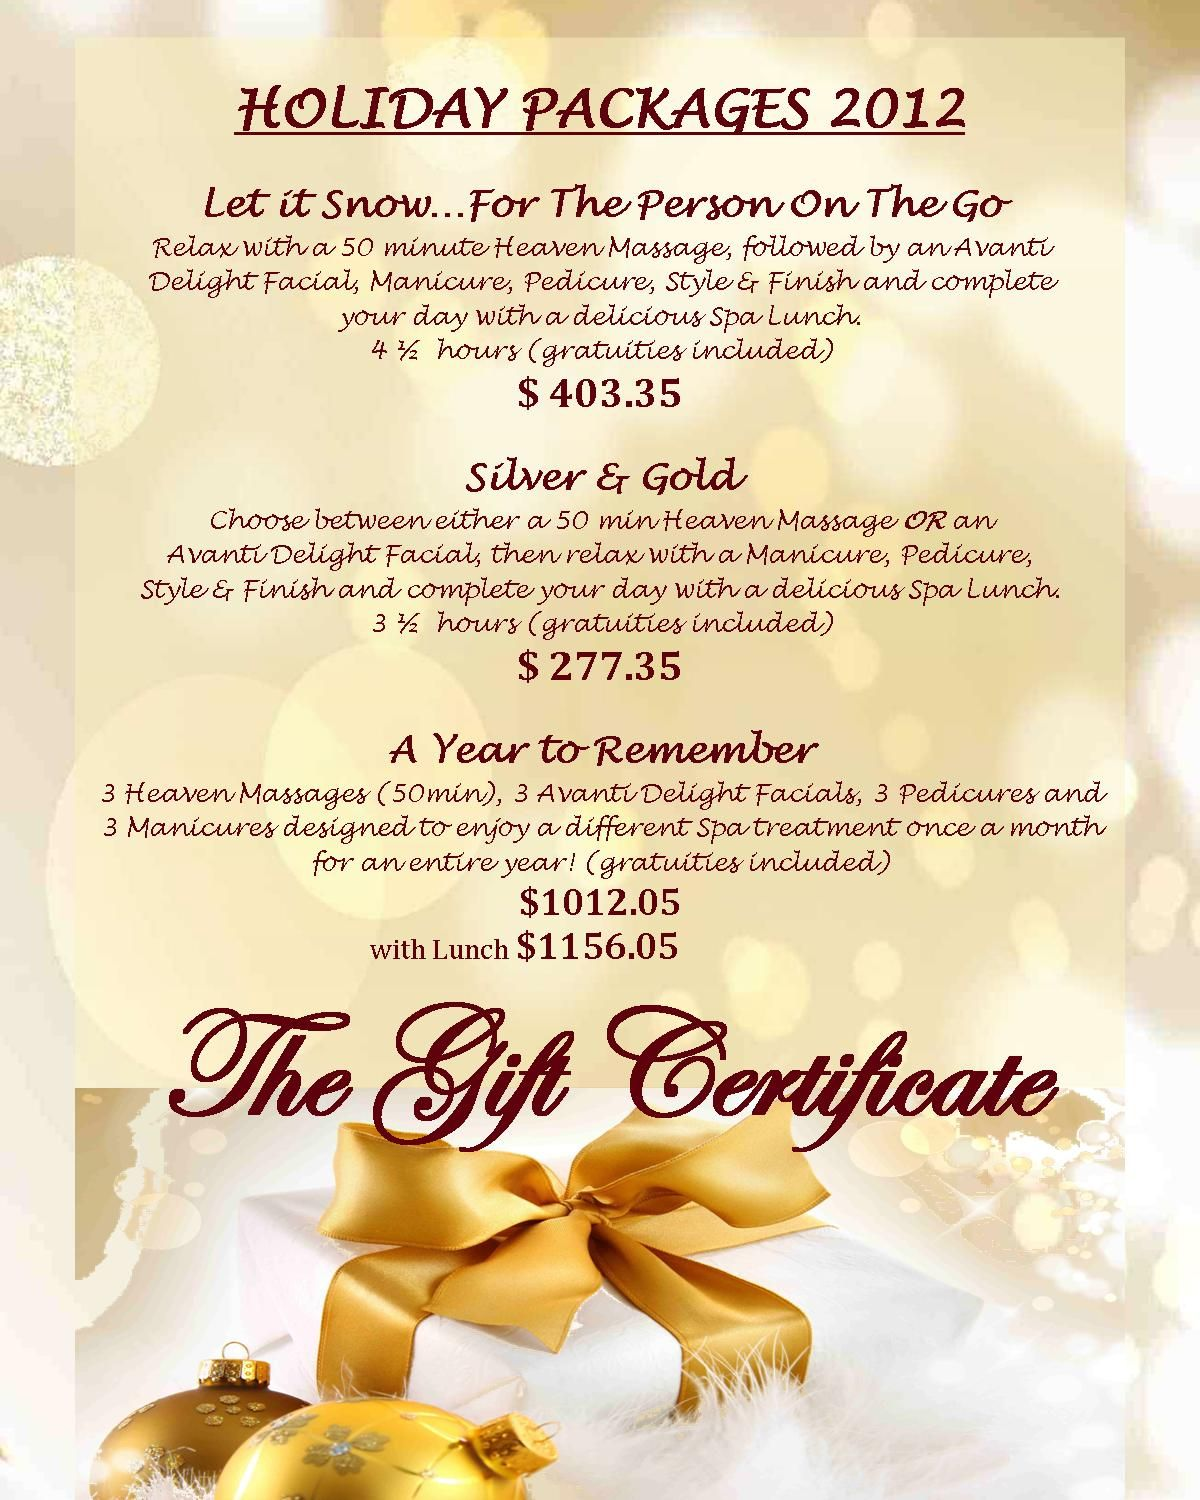 Holiday Packages 2012 - Give the GIFT of pure relaxation! Call 732-780-0222